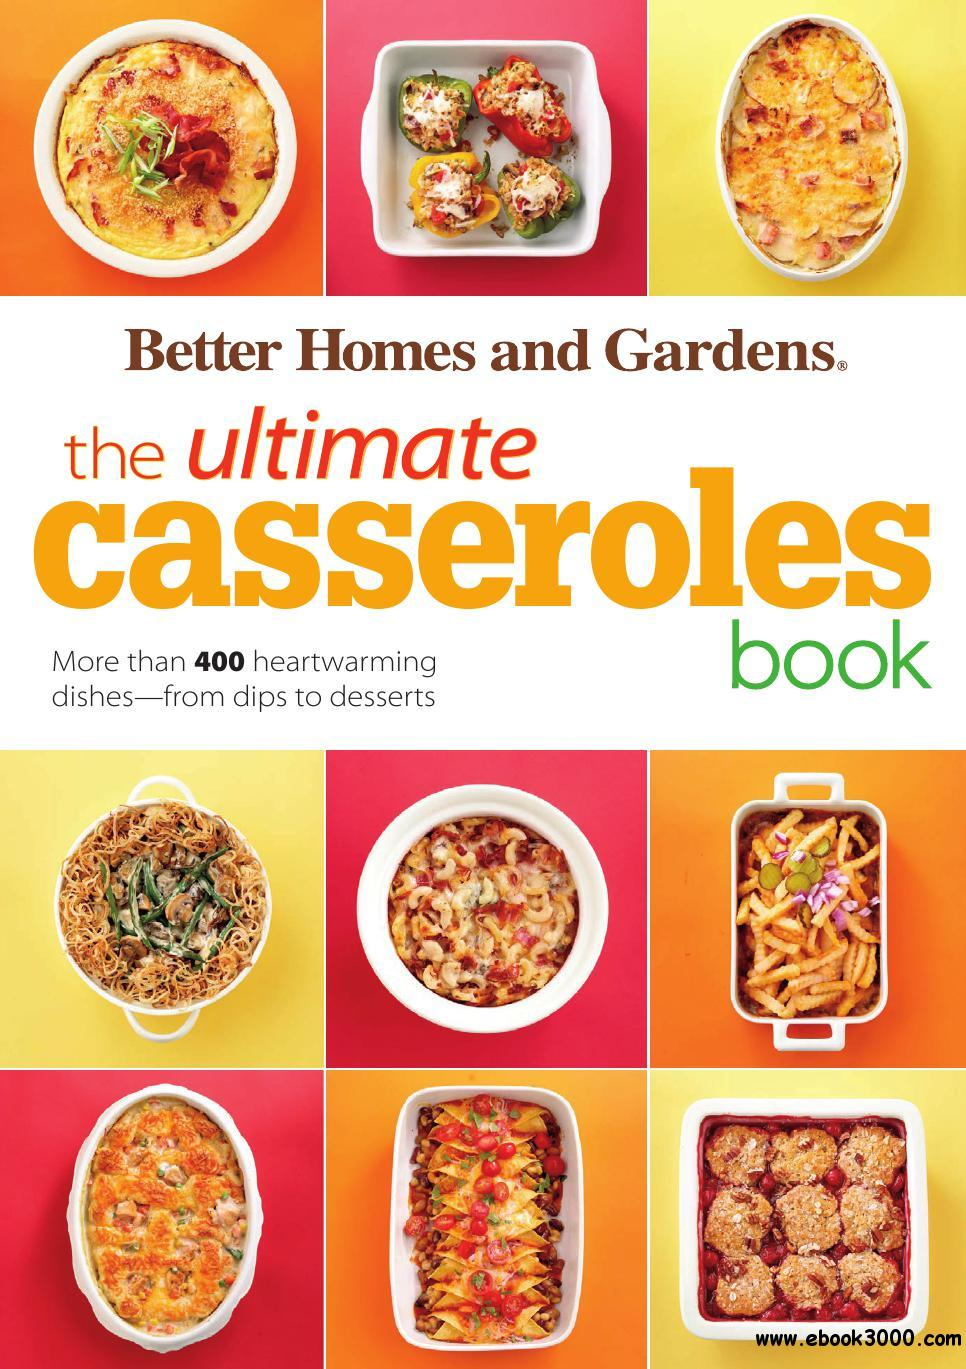 The Ultimate Casseroles Book: More than 400 Heartwarming Dishes from Dips to Desserts download dree